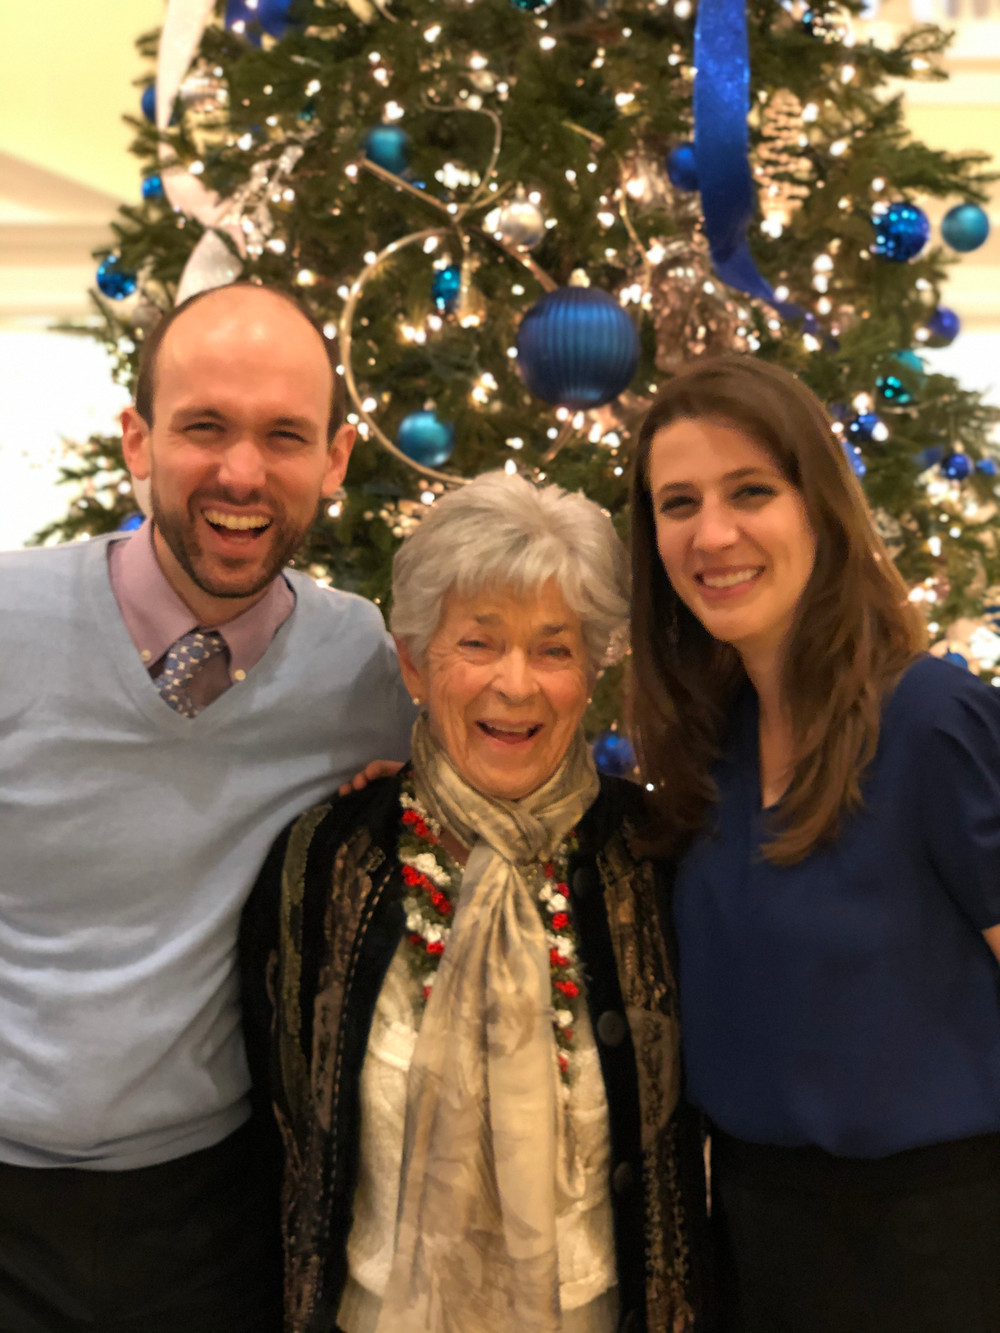 At Grammy's 90th Birthday Party in December.